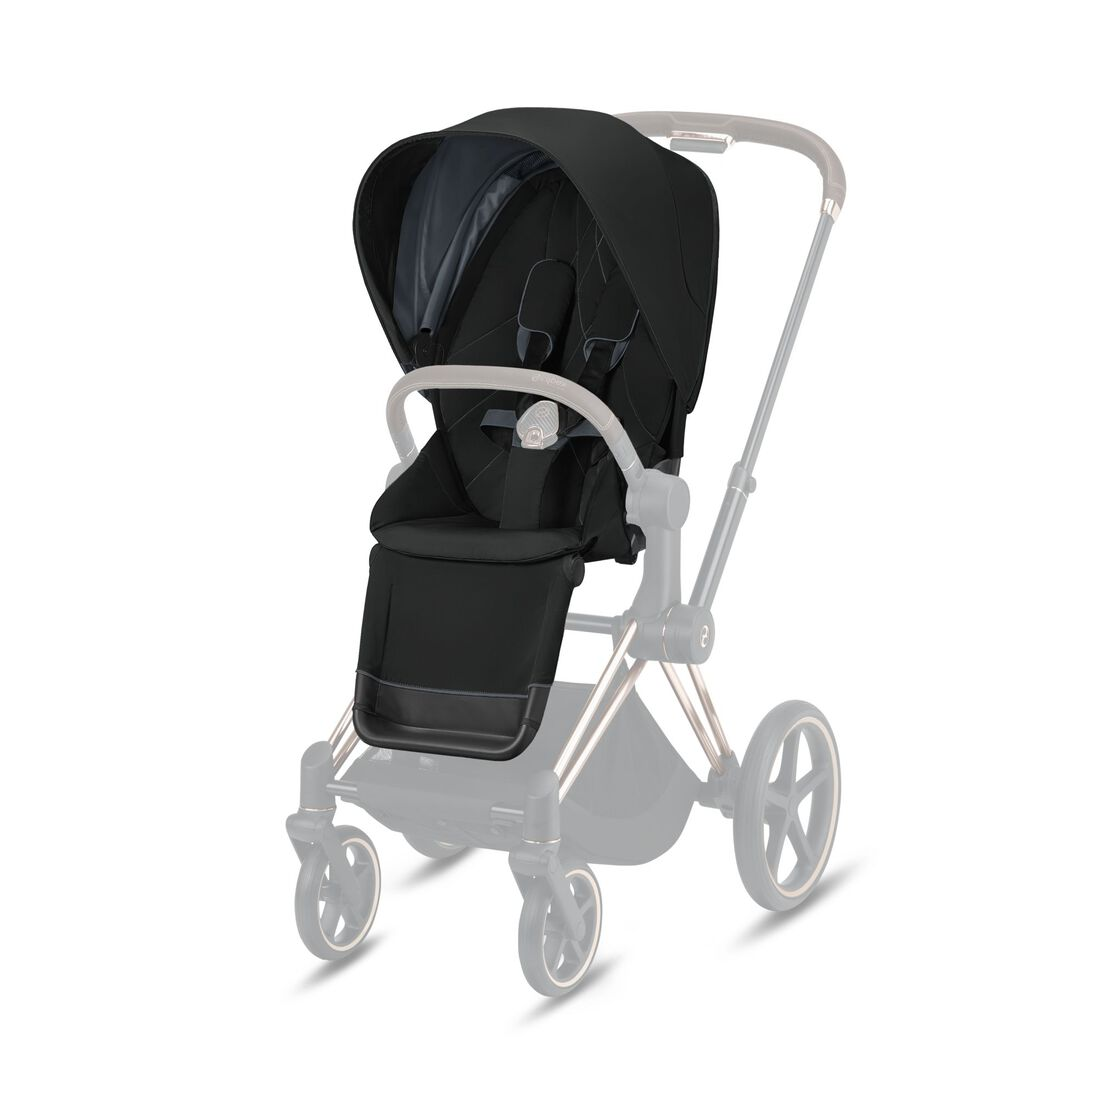 CYBEX Konfiguration e-Priam Set: Rahmen, Lux Carry Cot, Cloud Z i-Size, Sitzpaket in  large Bild 8